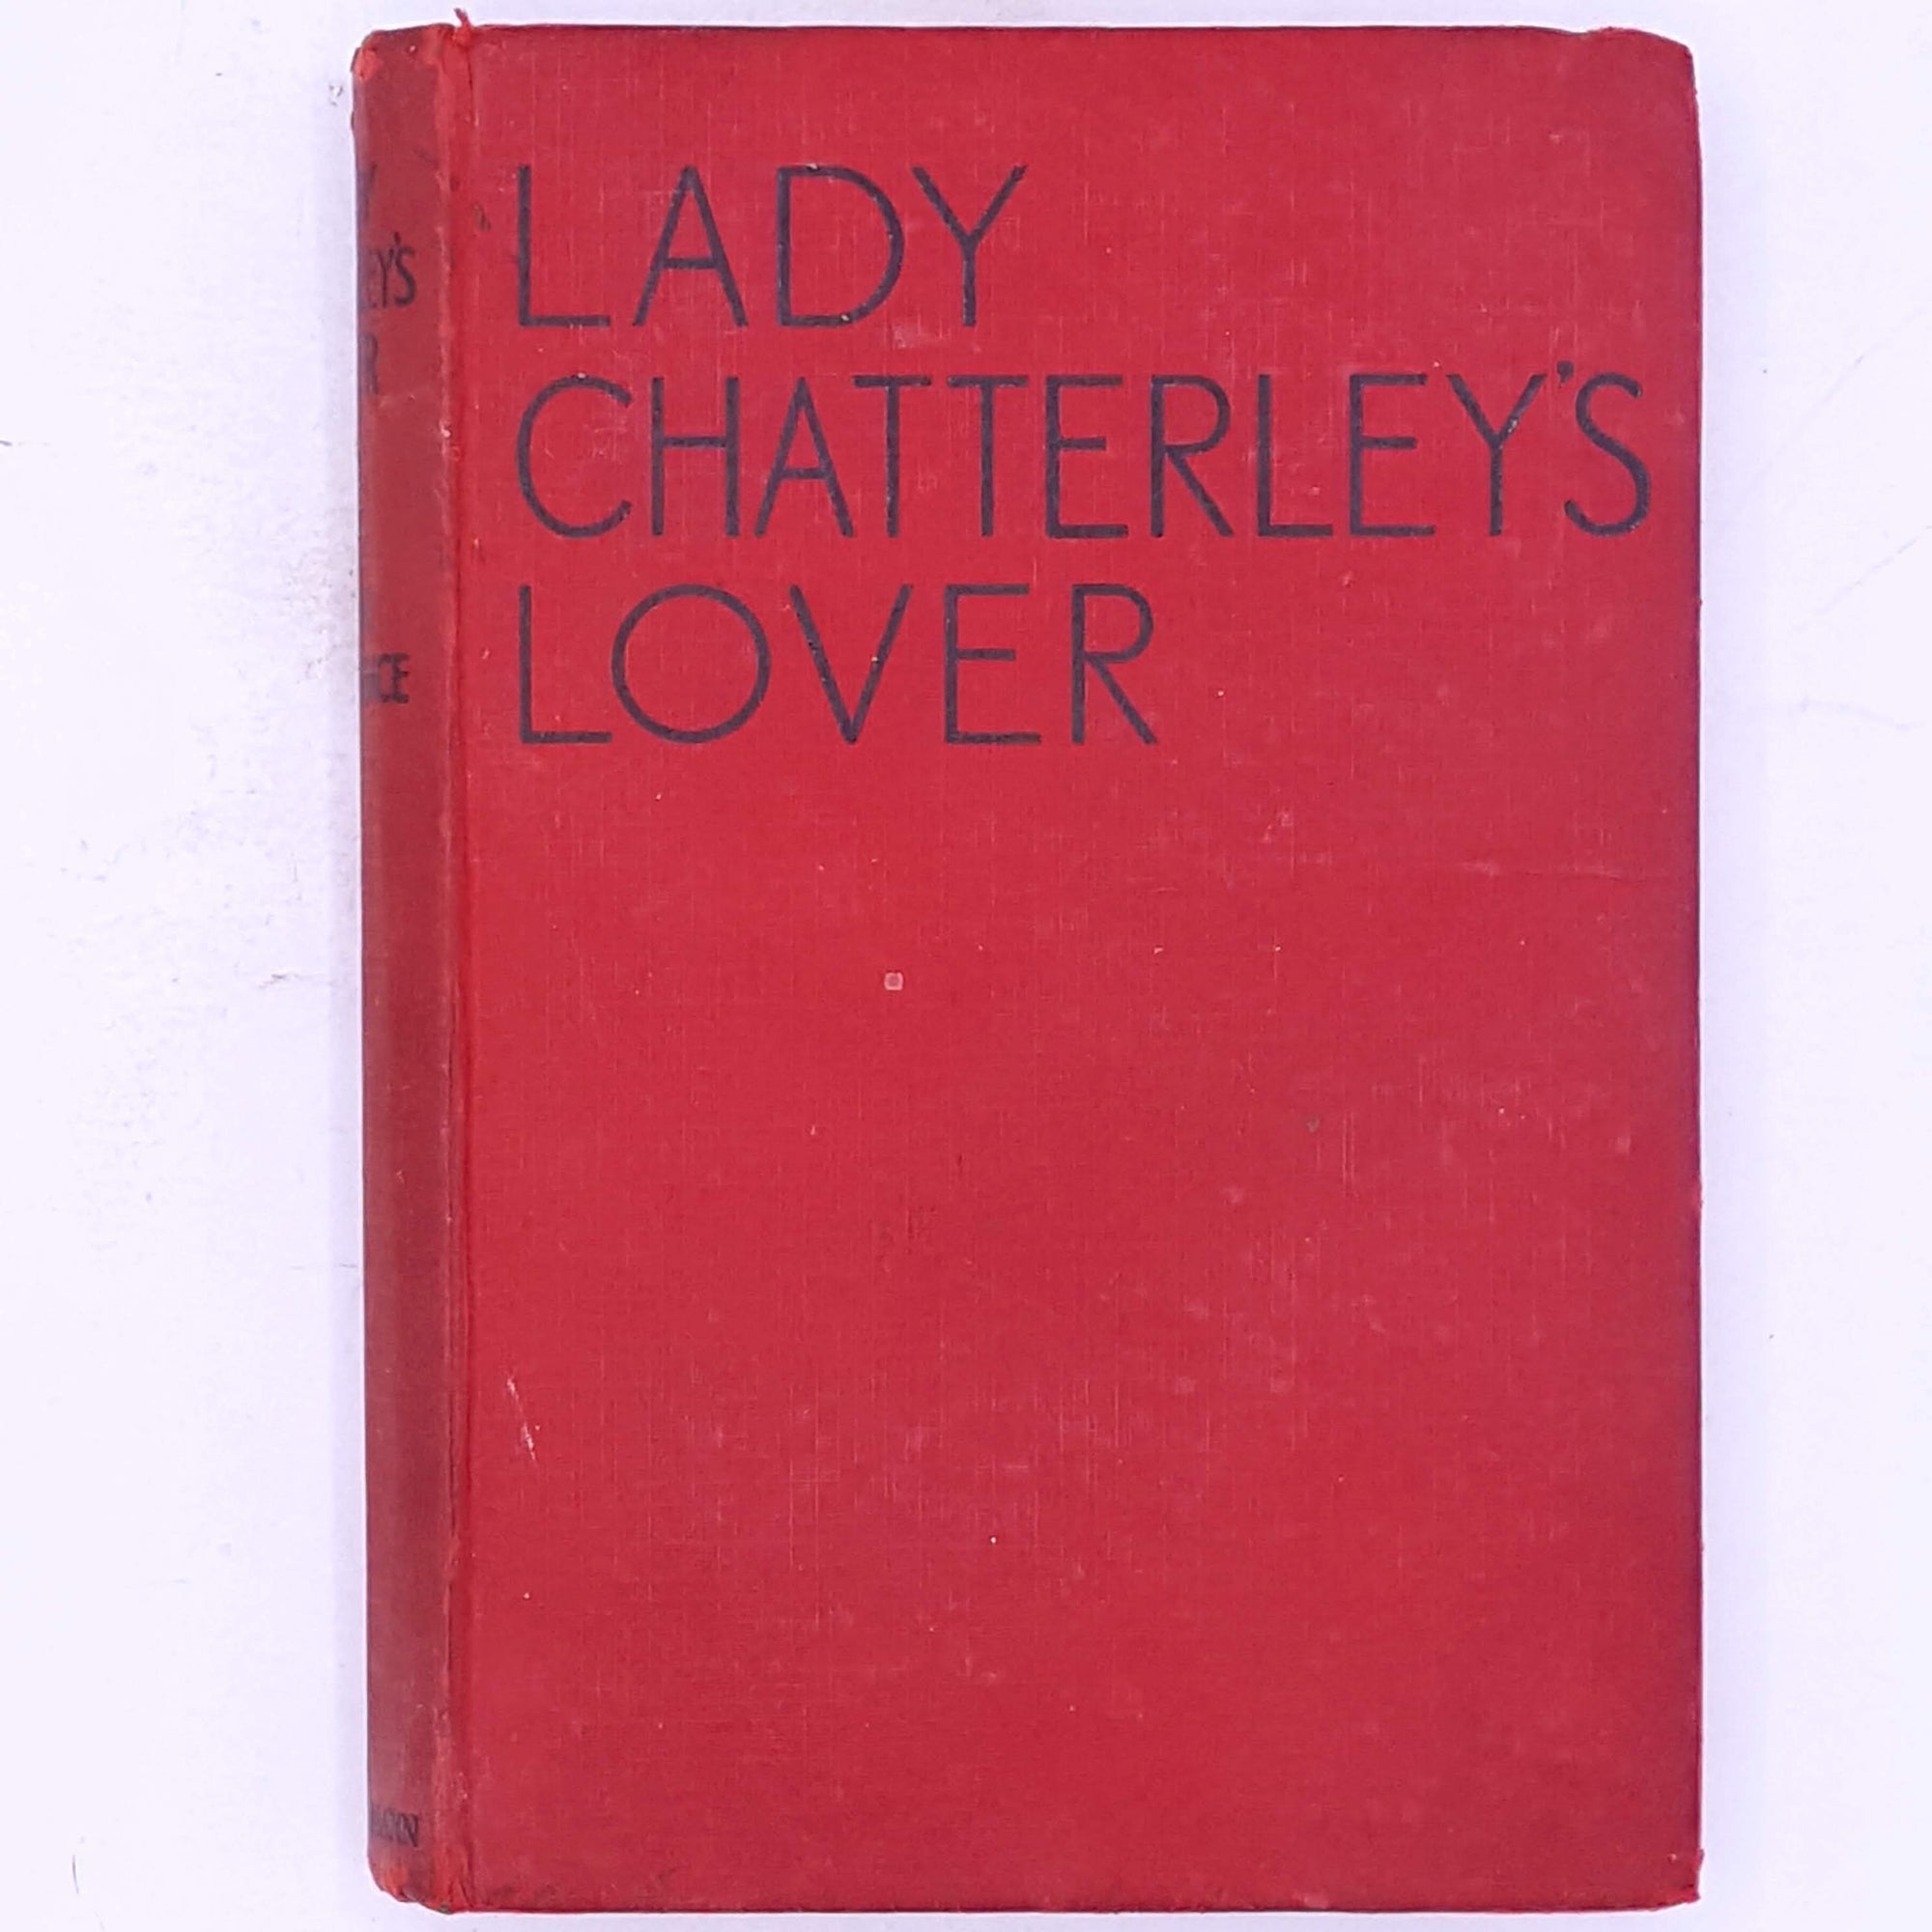 Lady Chatterley's Lover Banned Books